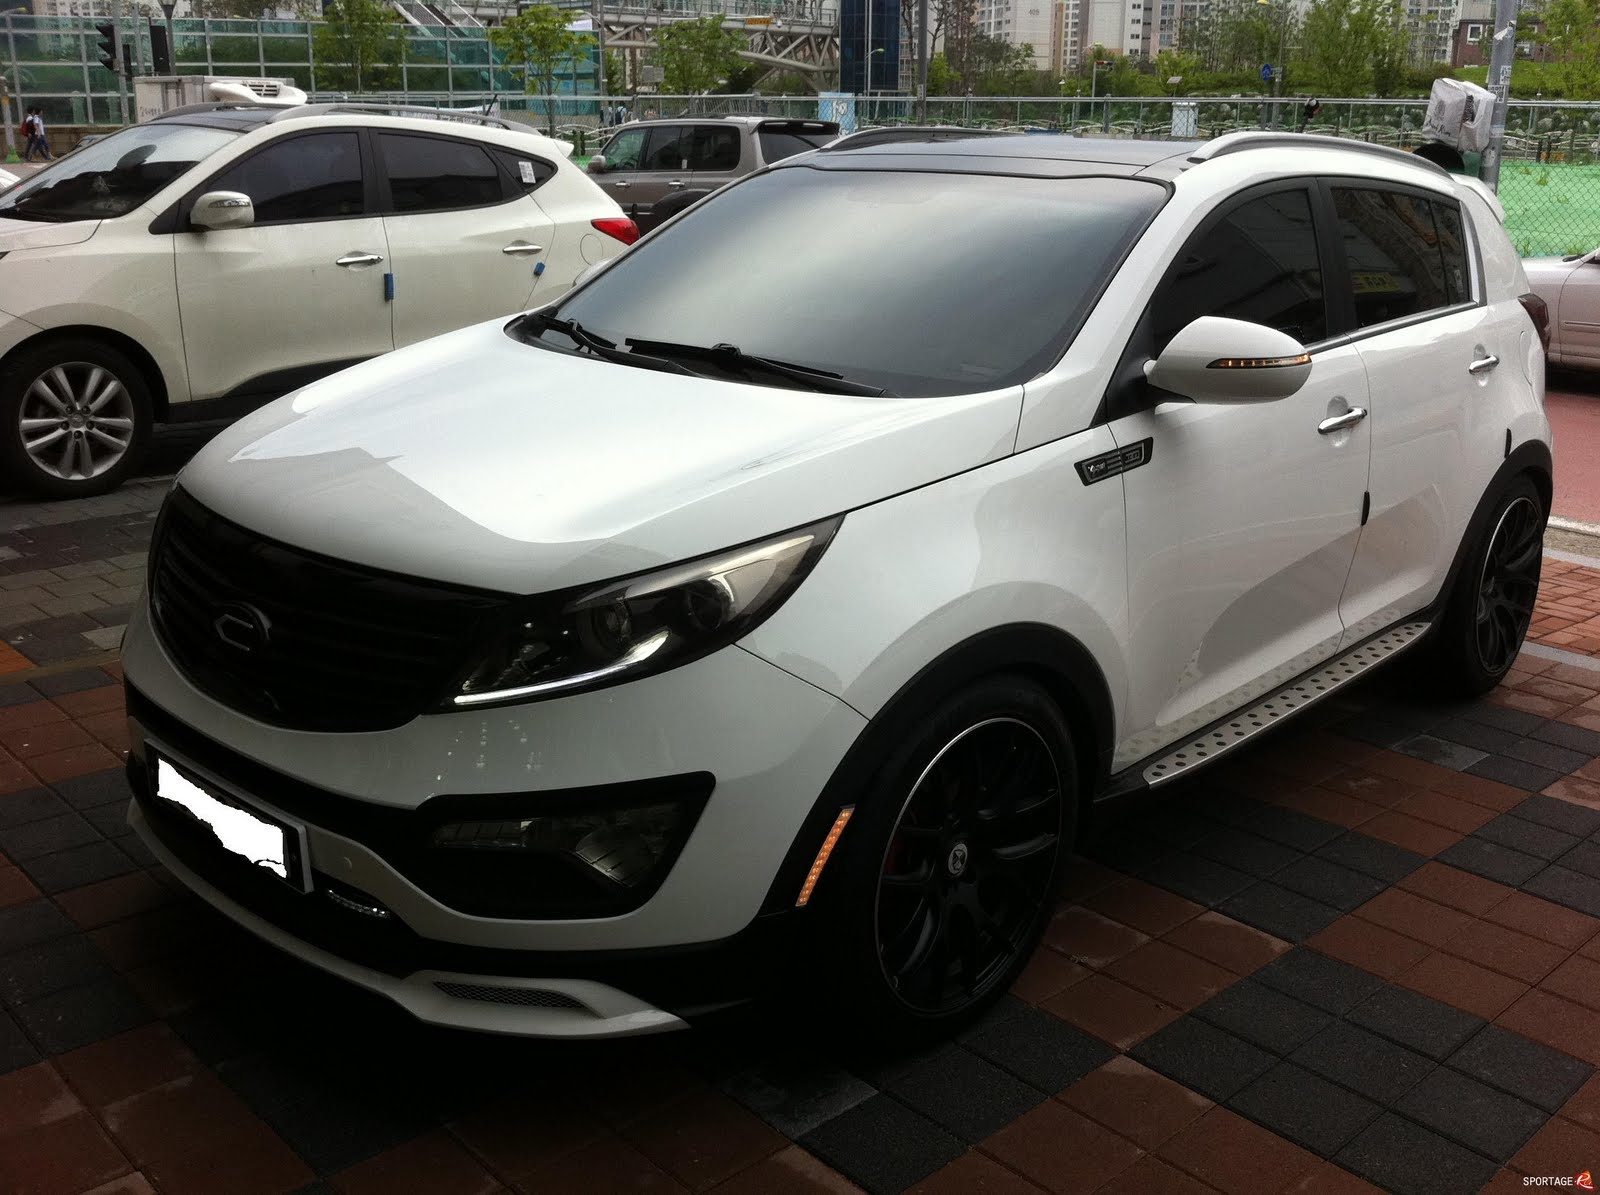 3dtuning Of Kia Sportage Crossover 2011 3dtuning Com